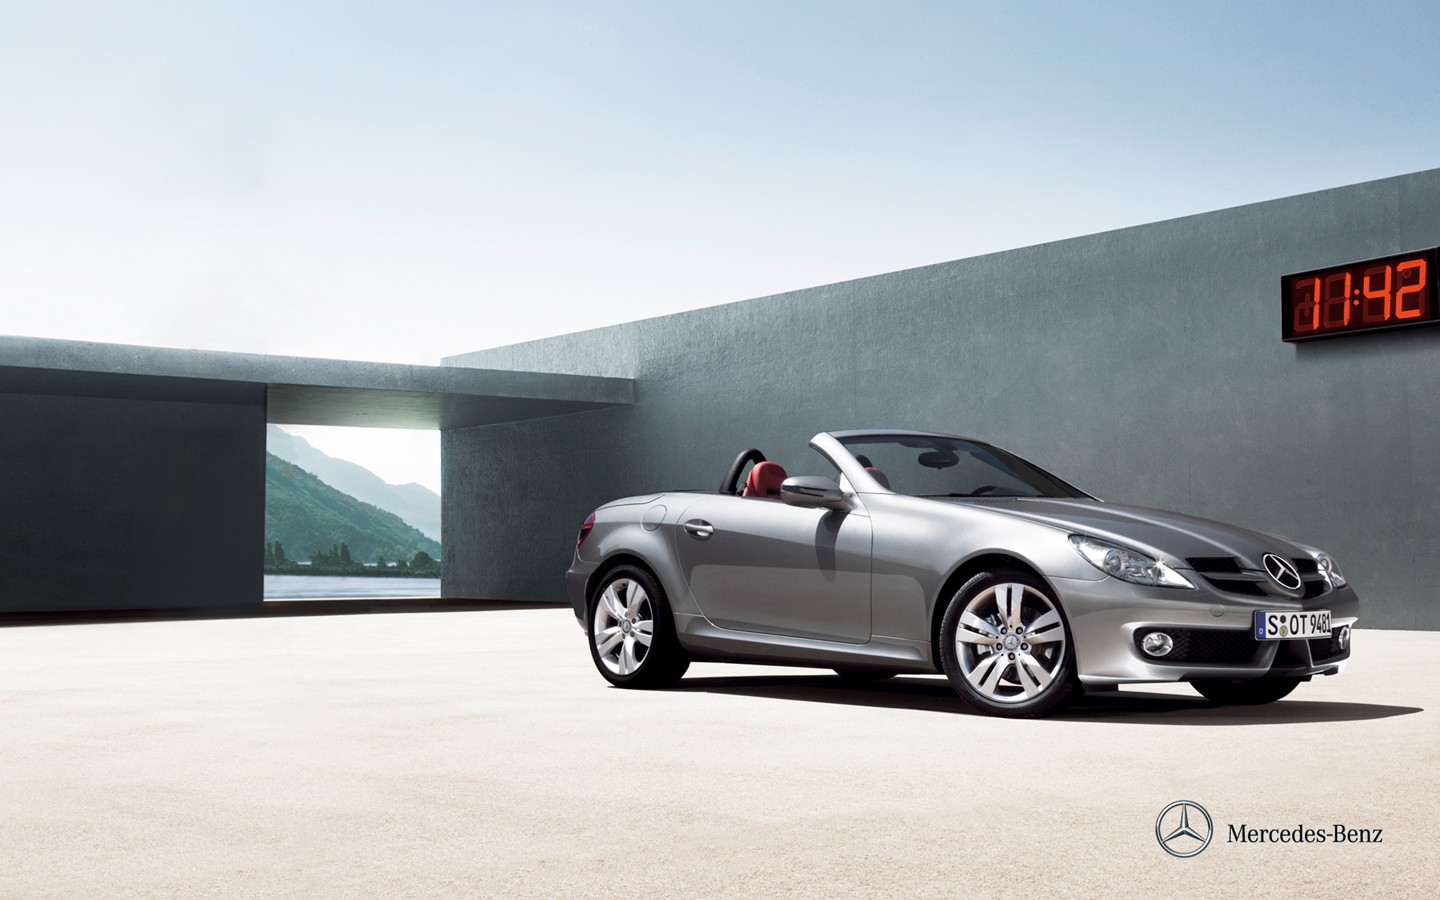 Mercedes-Benz SLK roadster 32010